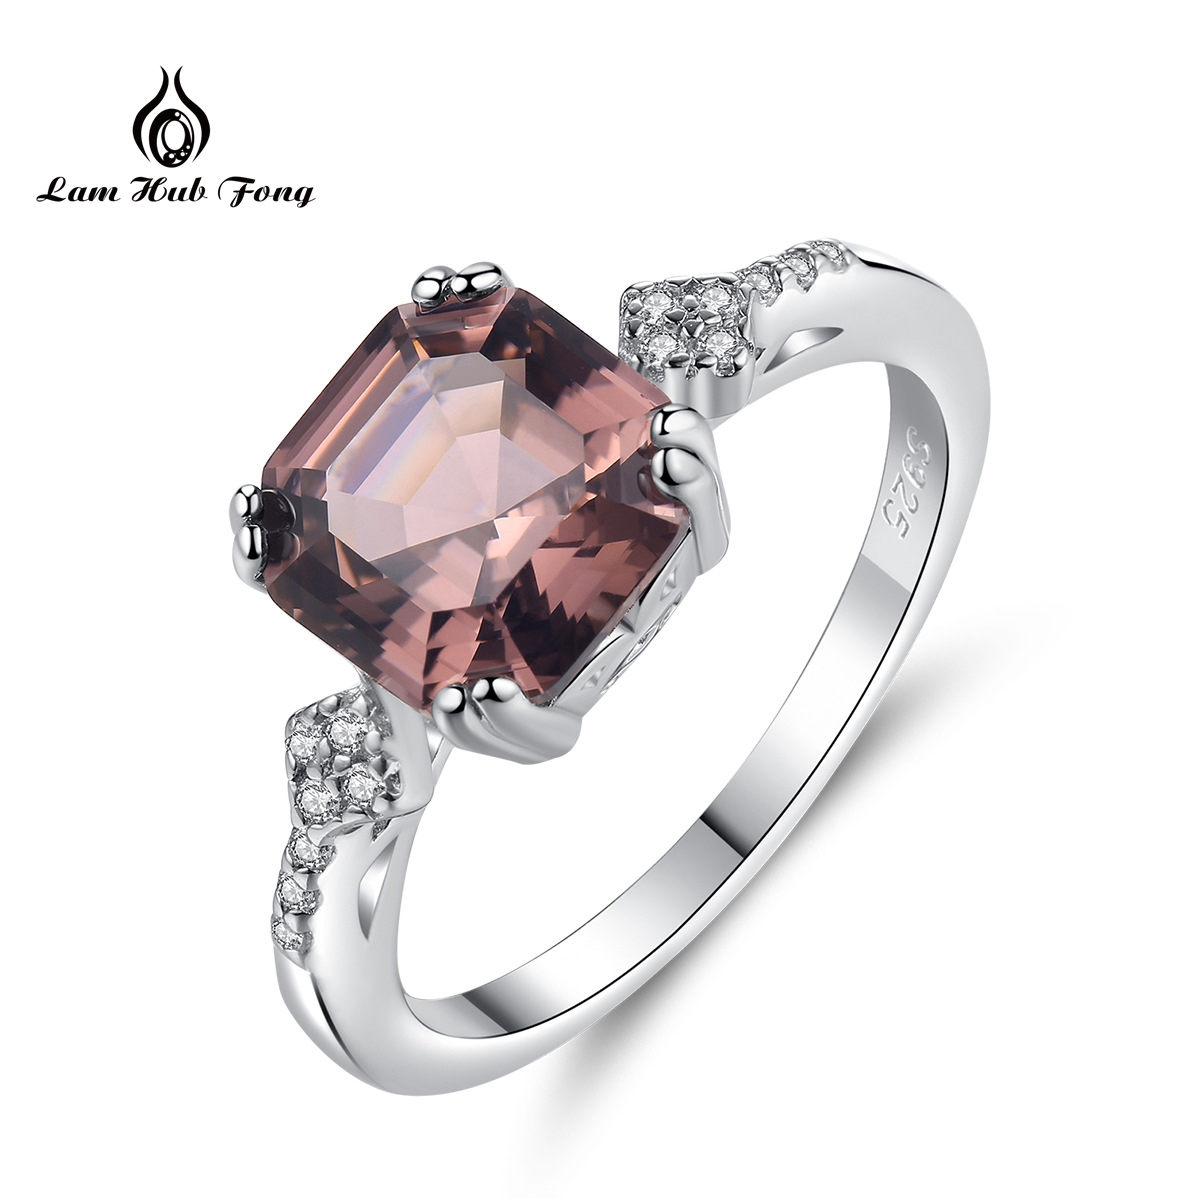 Engagement Rings Cooperative Top Quality Gem Opal Ring Elegant Women Ladies Gift High Quality Aaa Big Stone Fashion Classic Gold Filled Jewelry Rings Buy One Get One Free